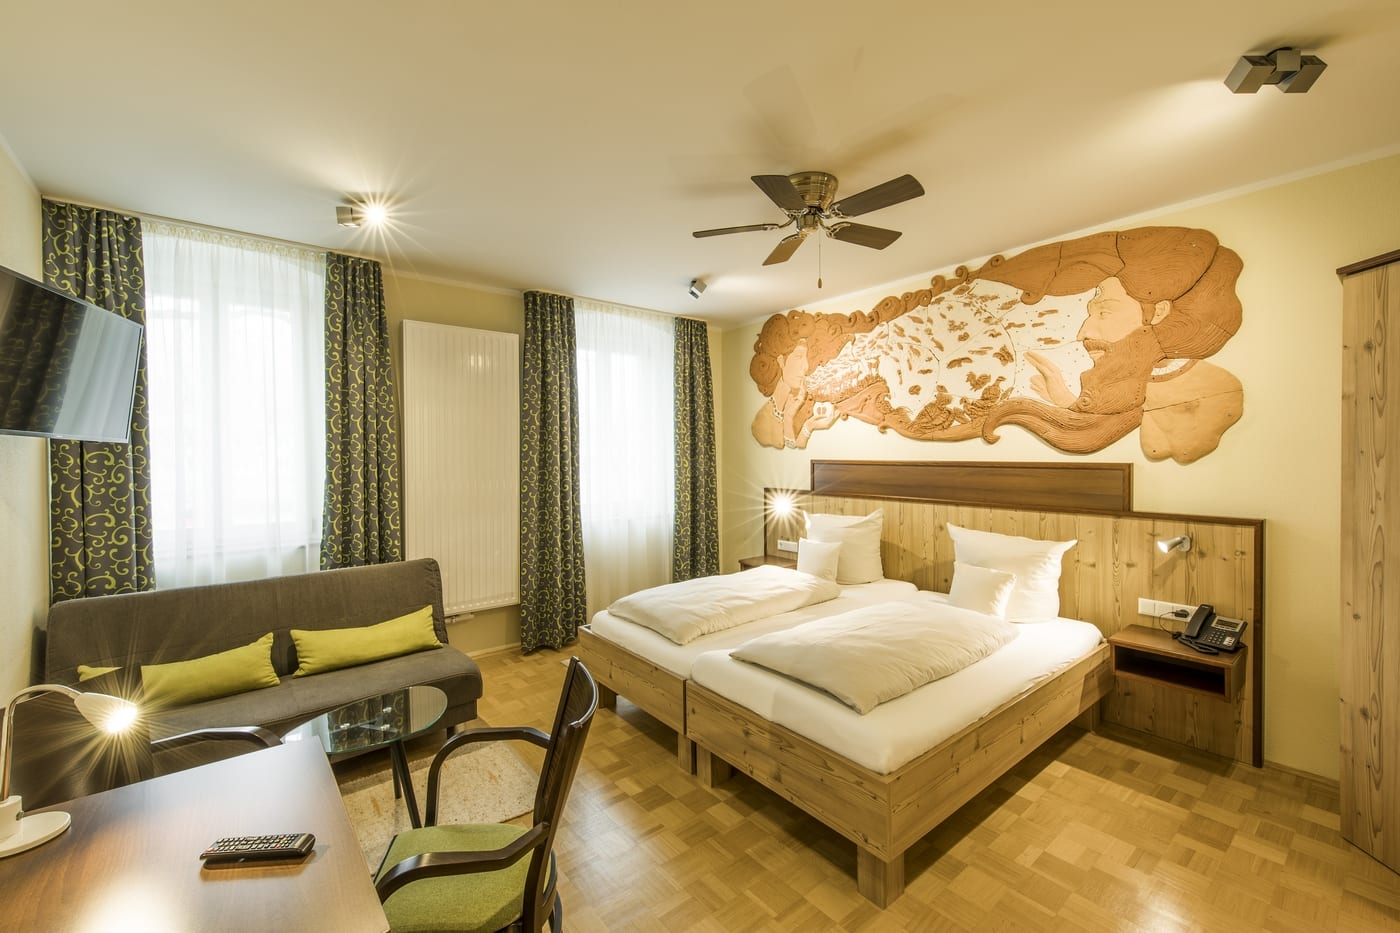 Genesis is a double room with wall-filling clay artwork created by Hungarian artist Lilian Kovács.